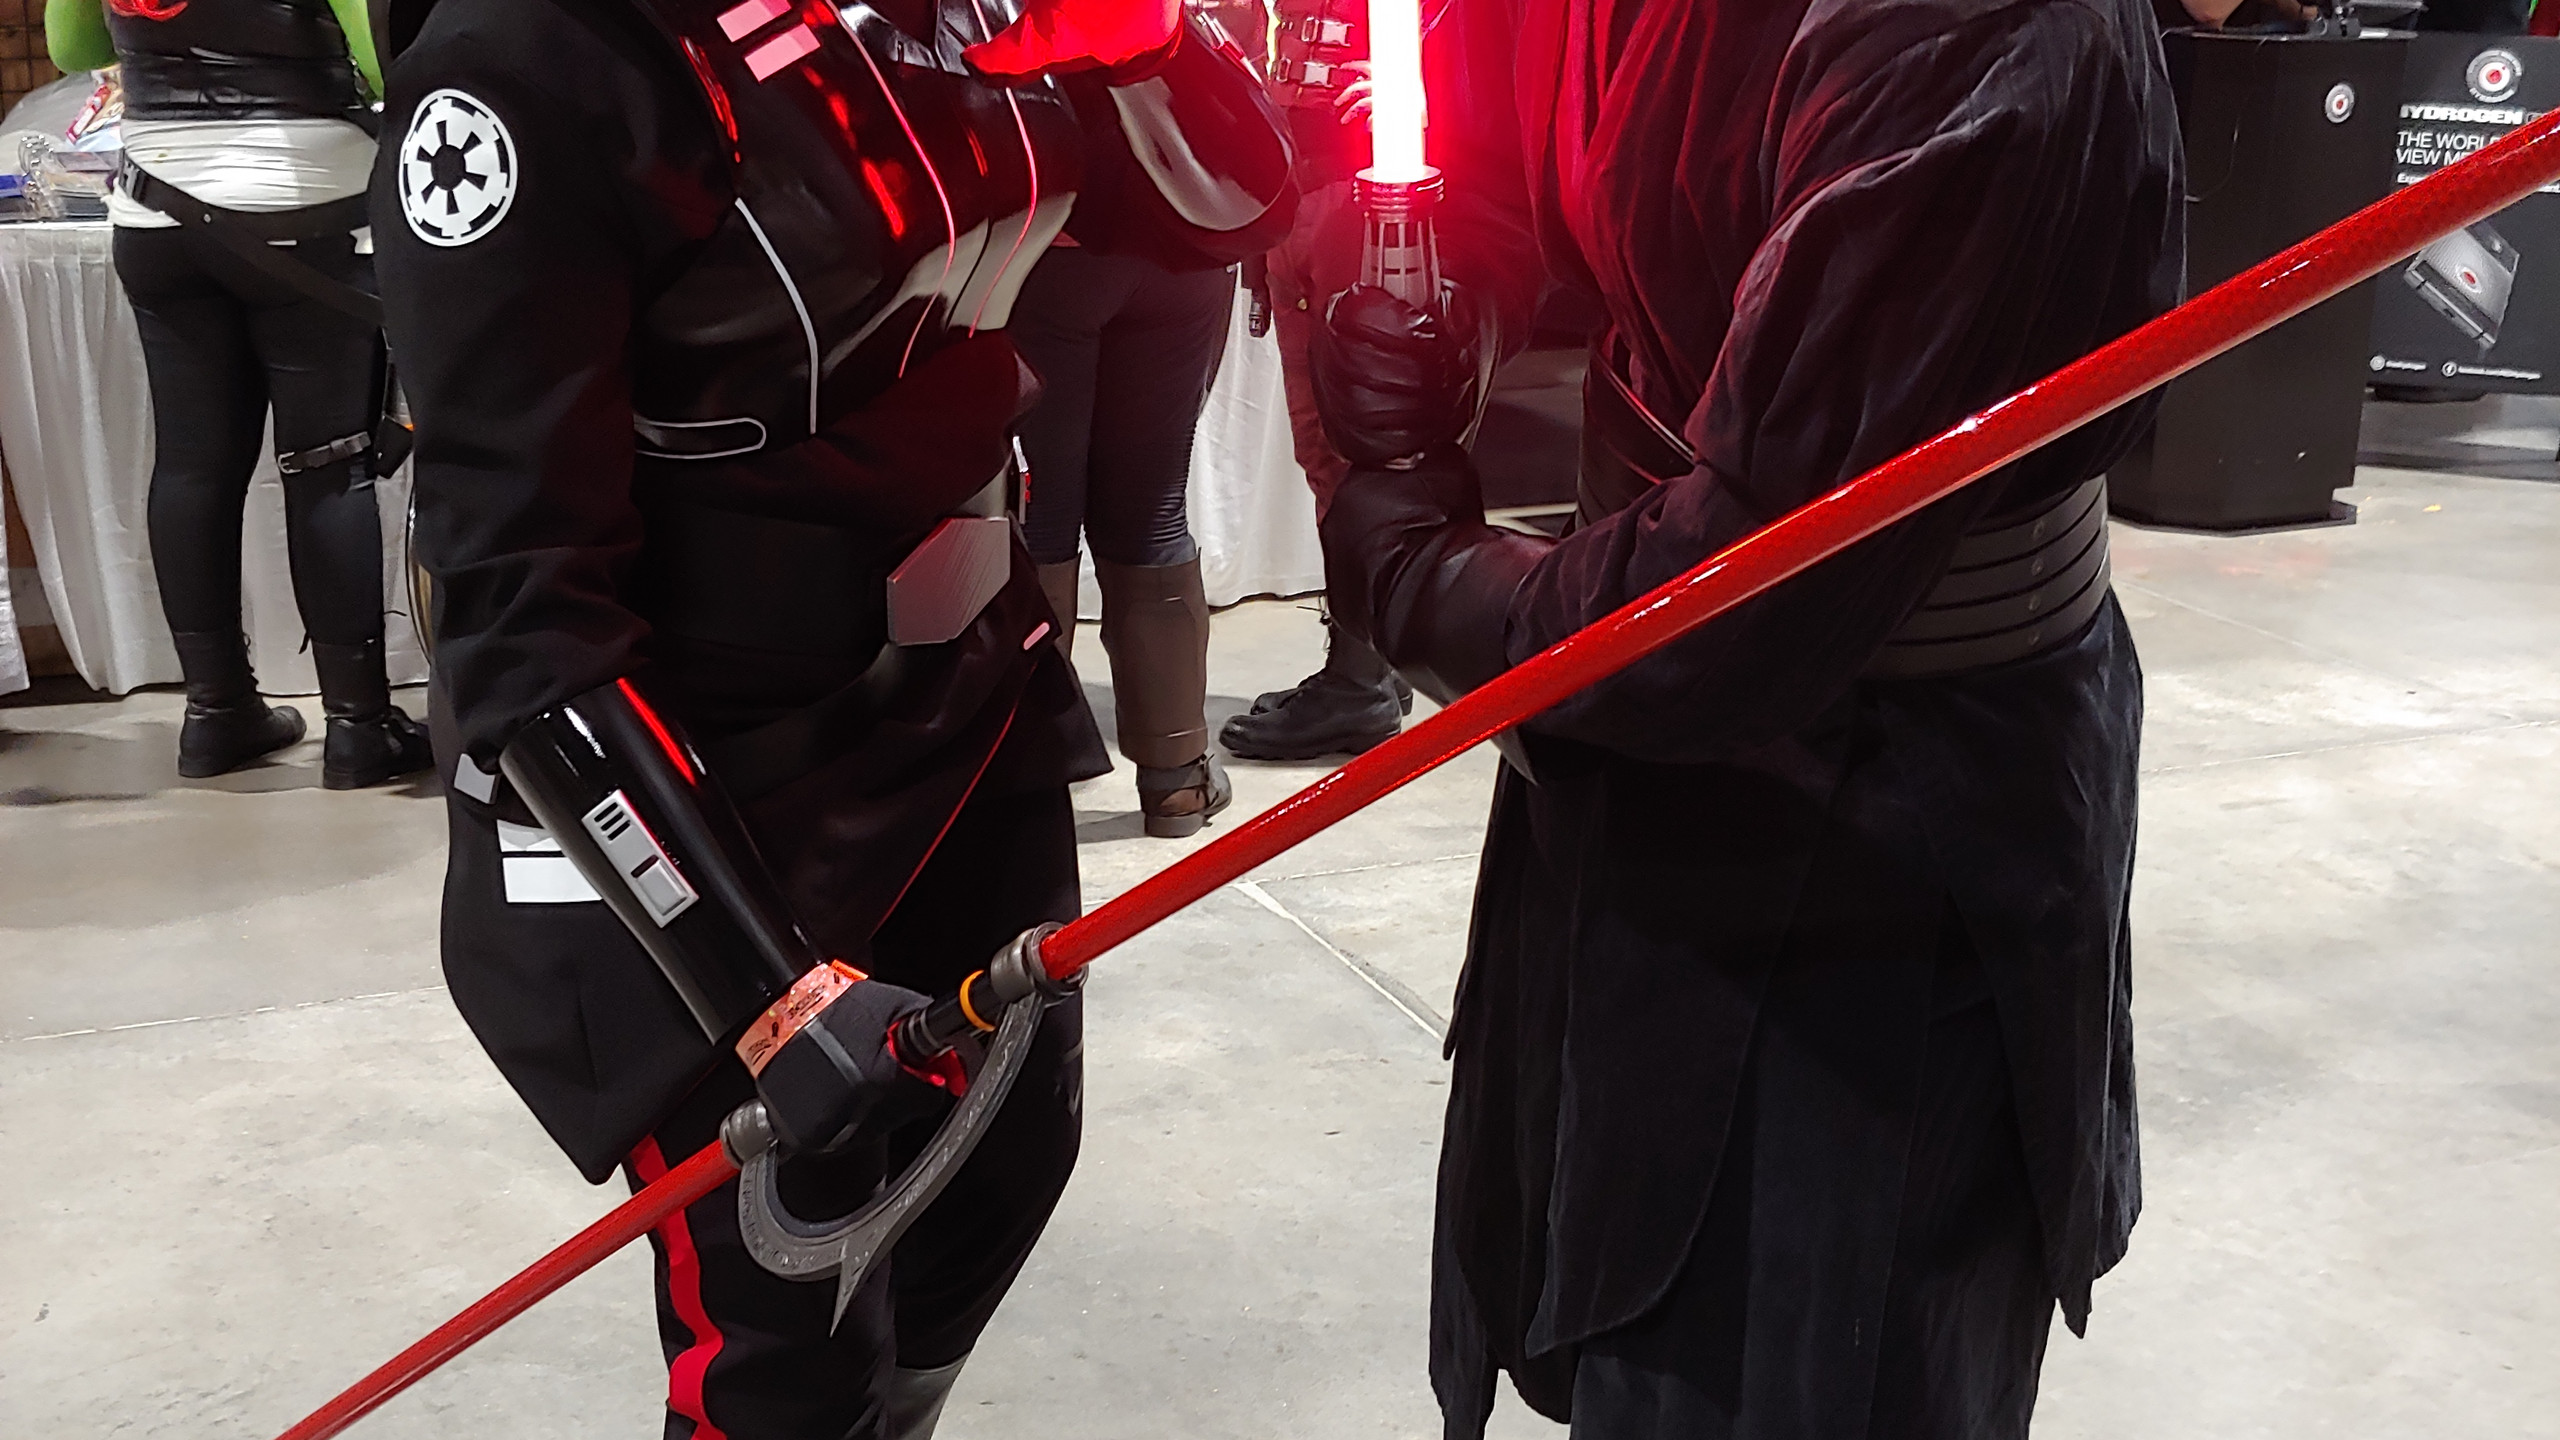 Sith Seventh Sister and Darth Maul